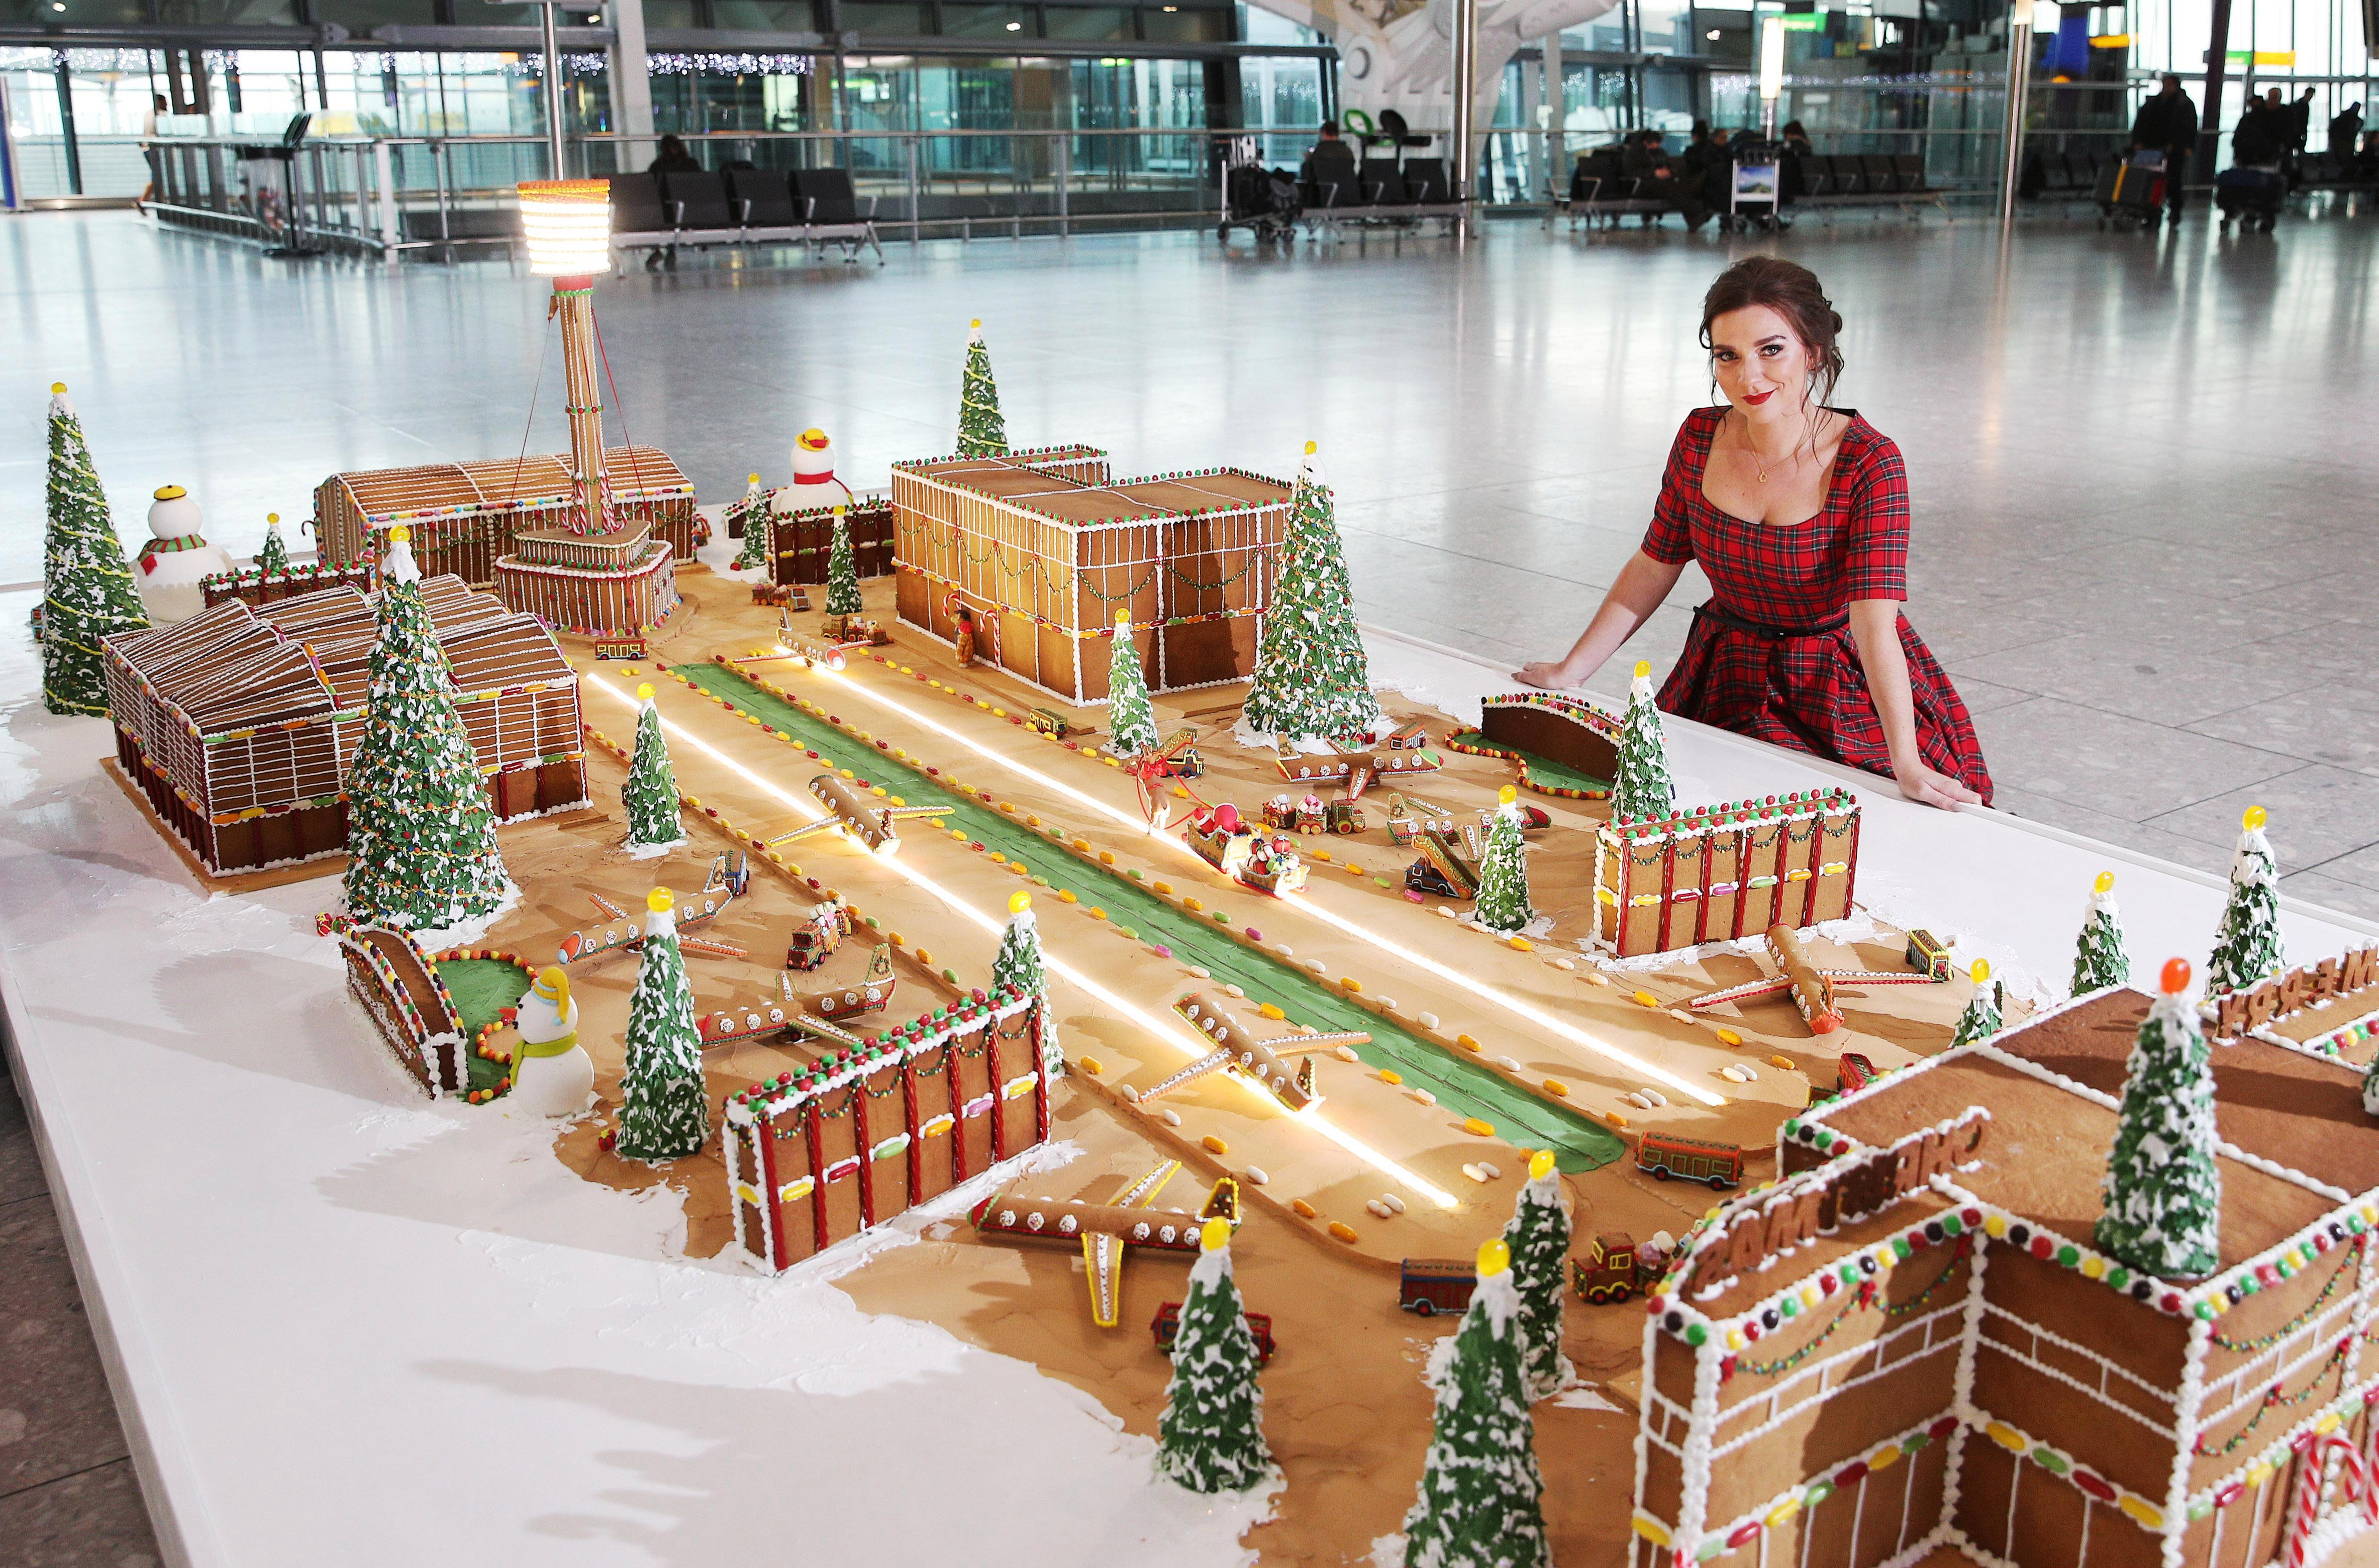 Great British Bake Off winner Candice Brown unveils gingerbread model of Heathrow Airport to surprise Christmas travellers